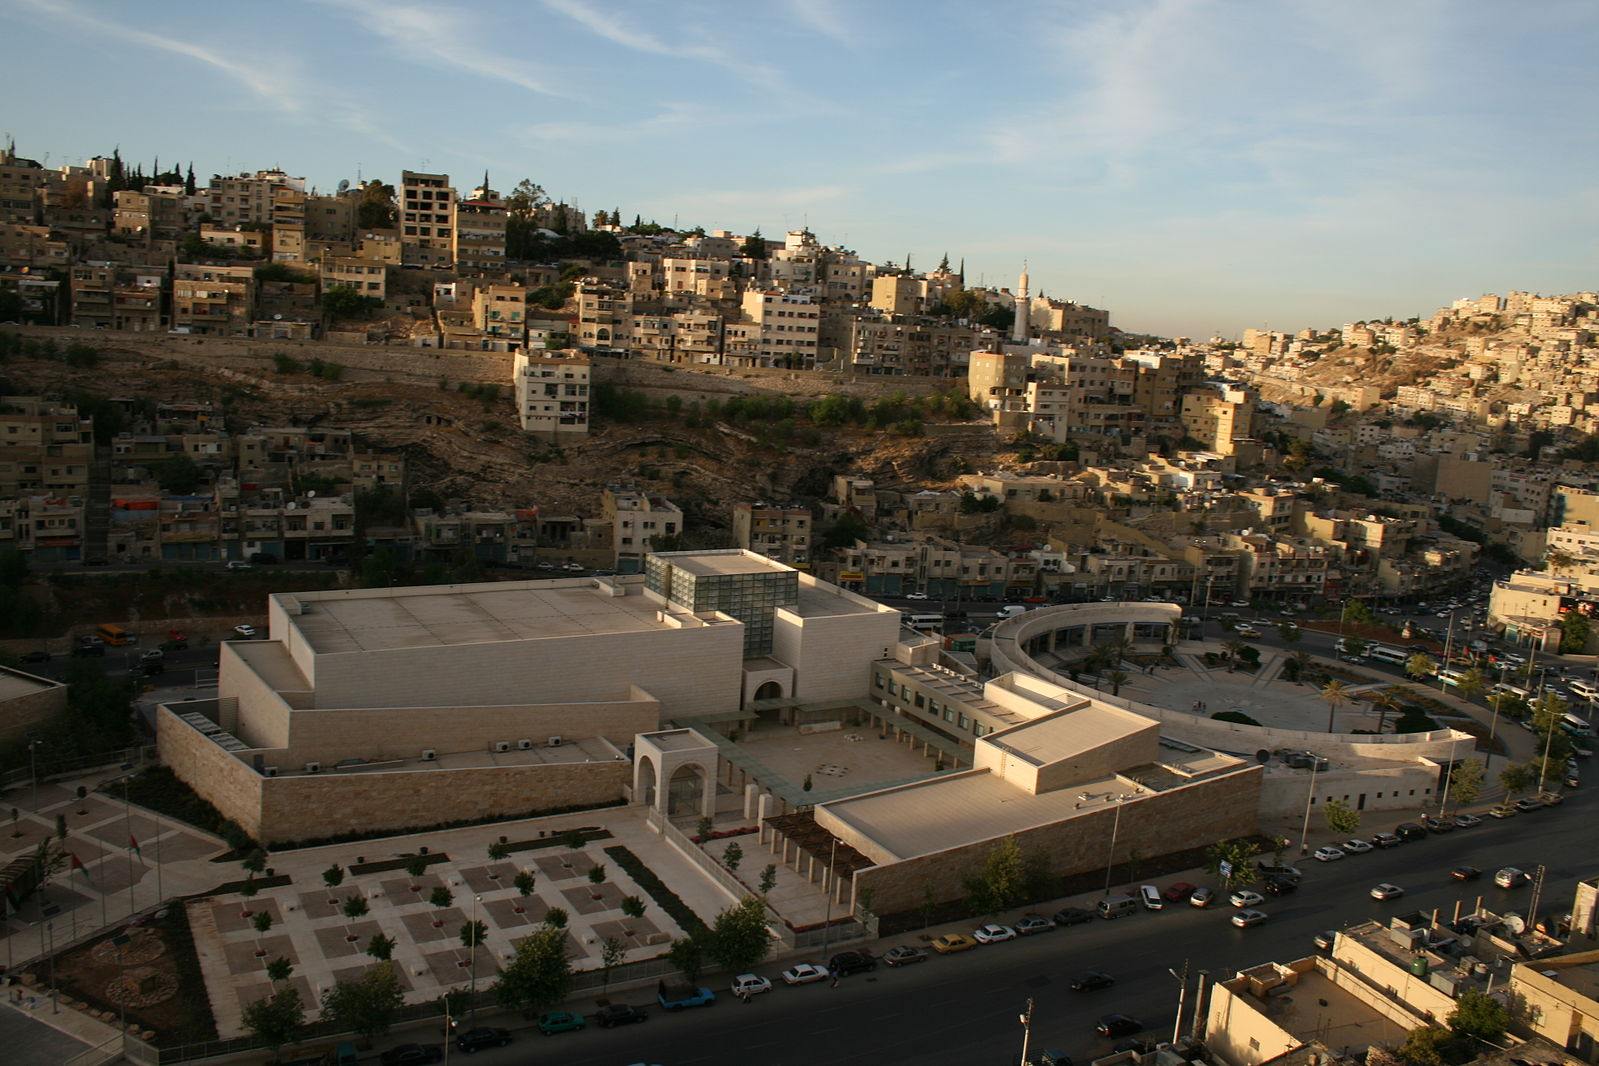 A visit to Jordan Museum is one of the best things to do in Amman